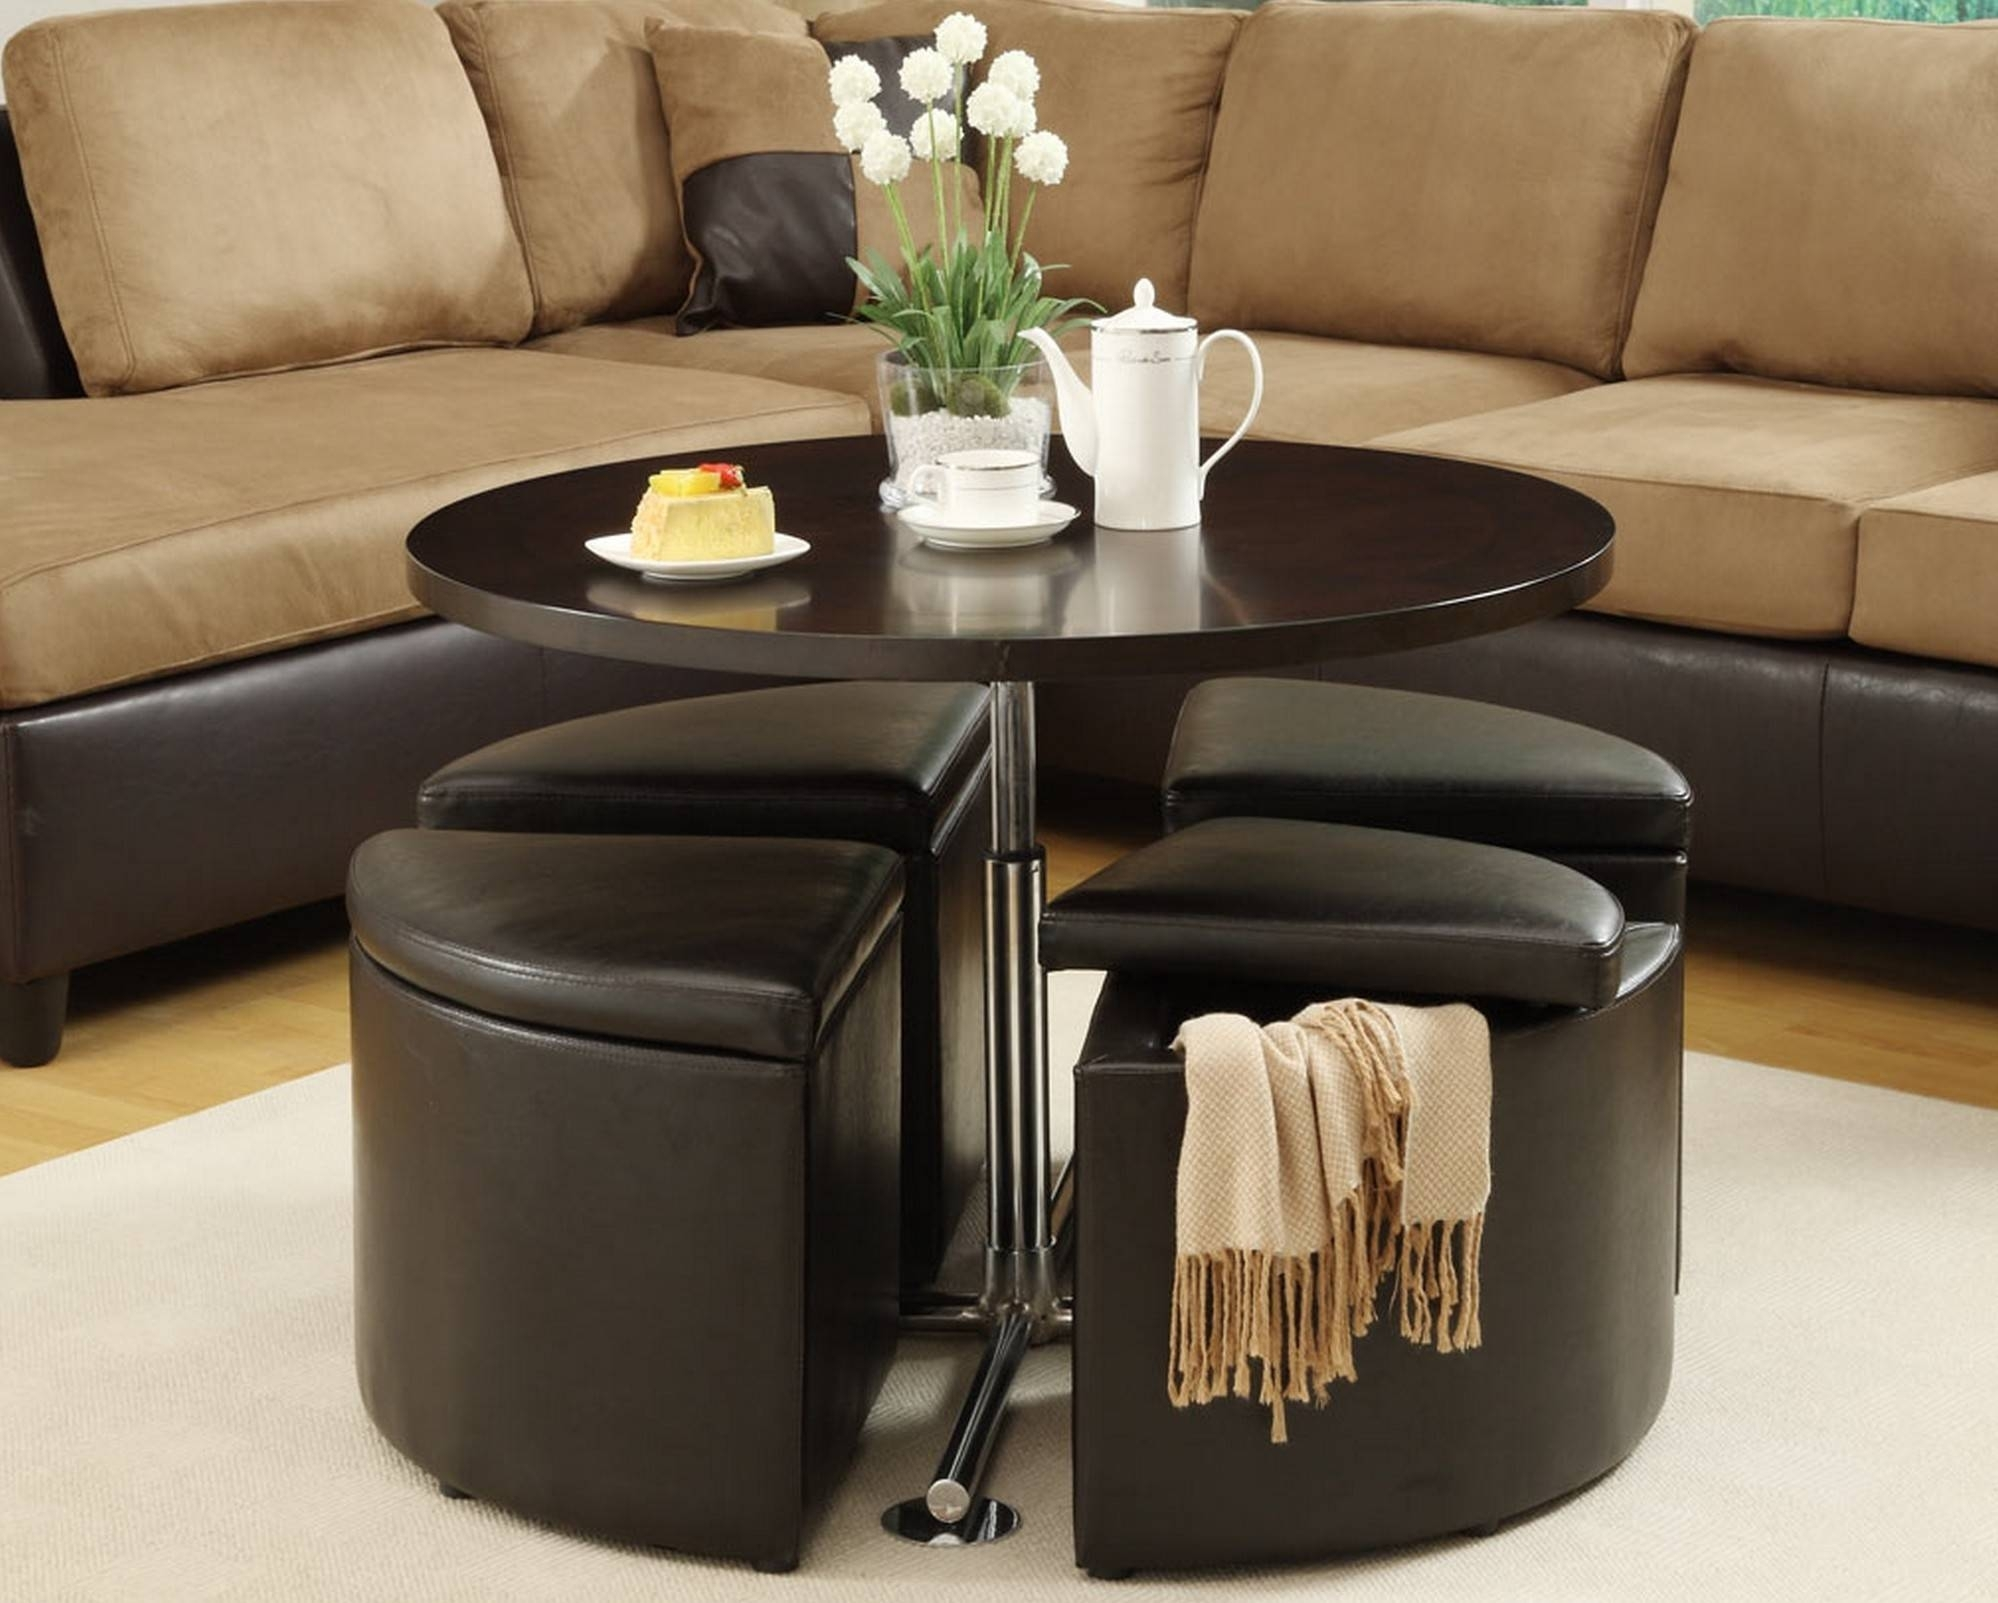 Superbe Footstool Coffee Table Storage